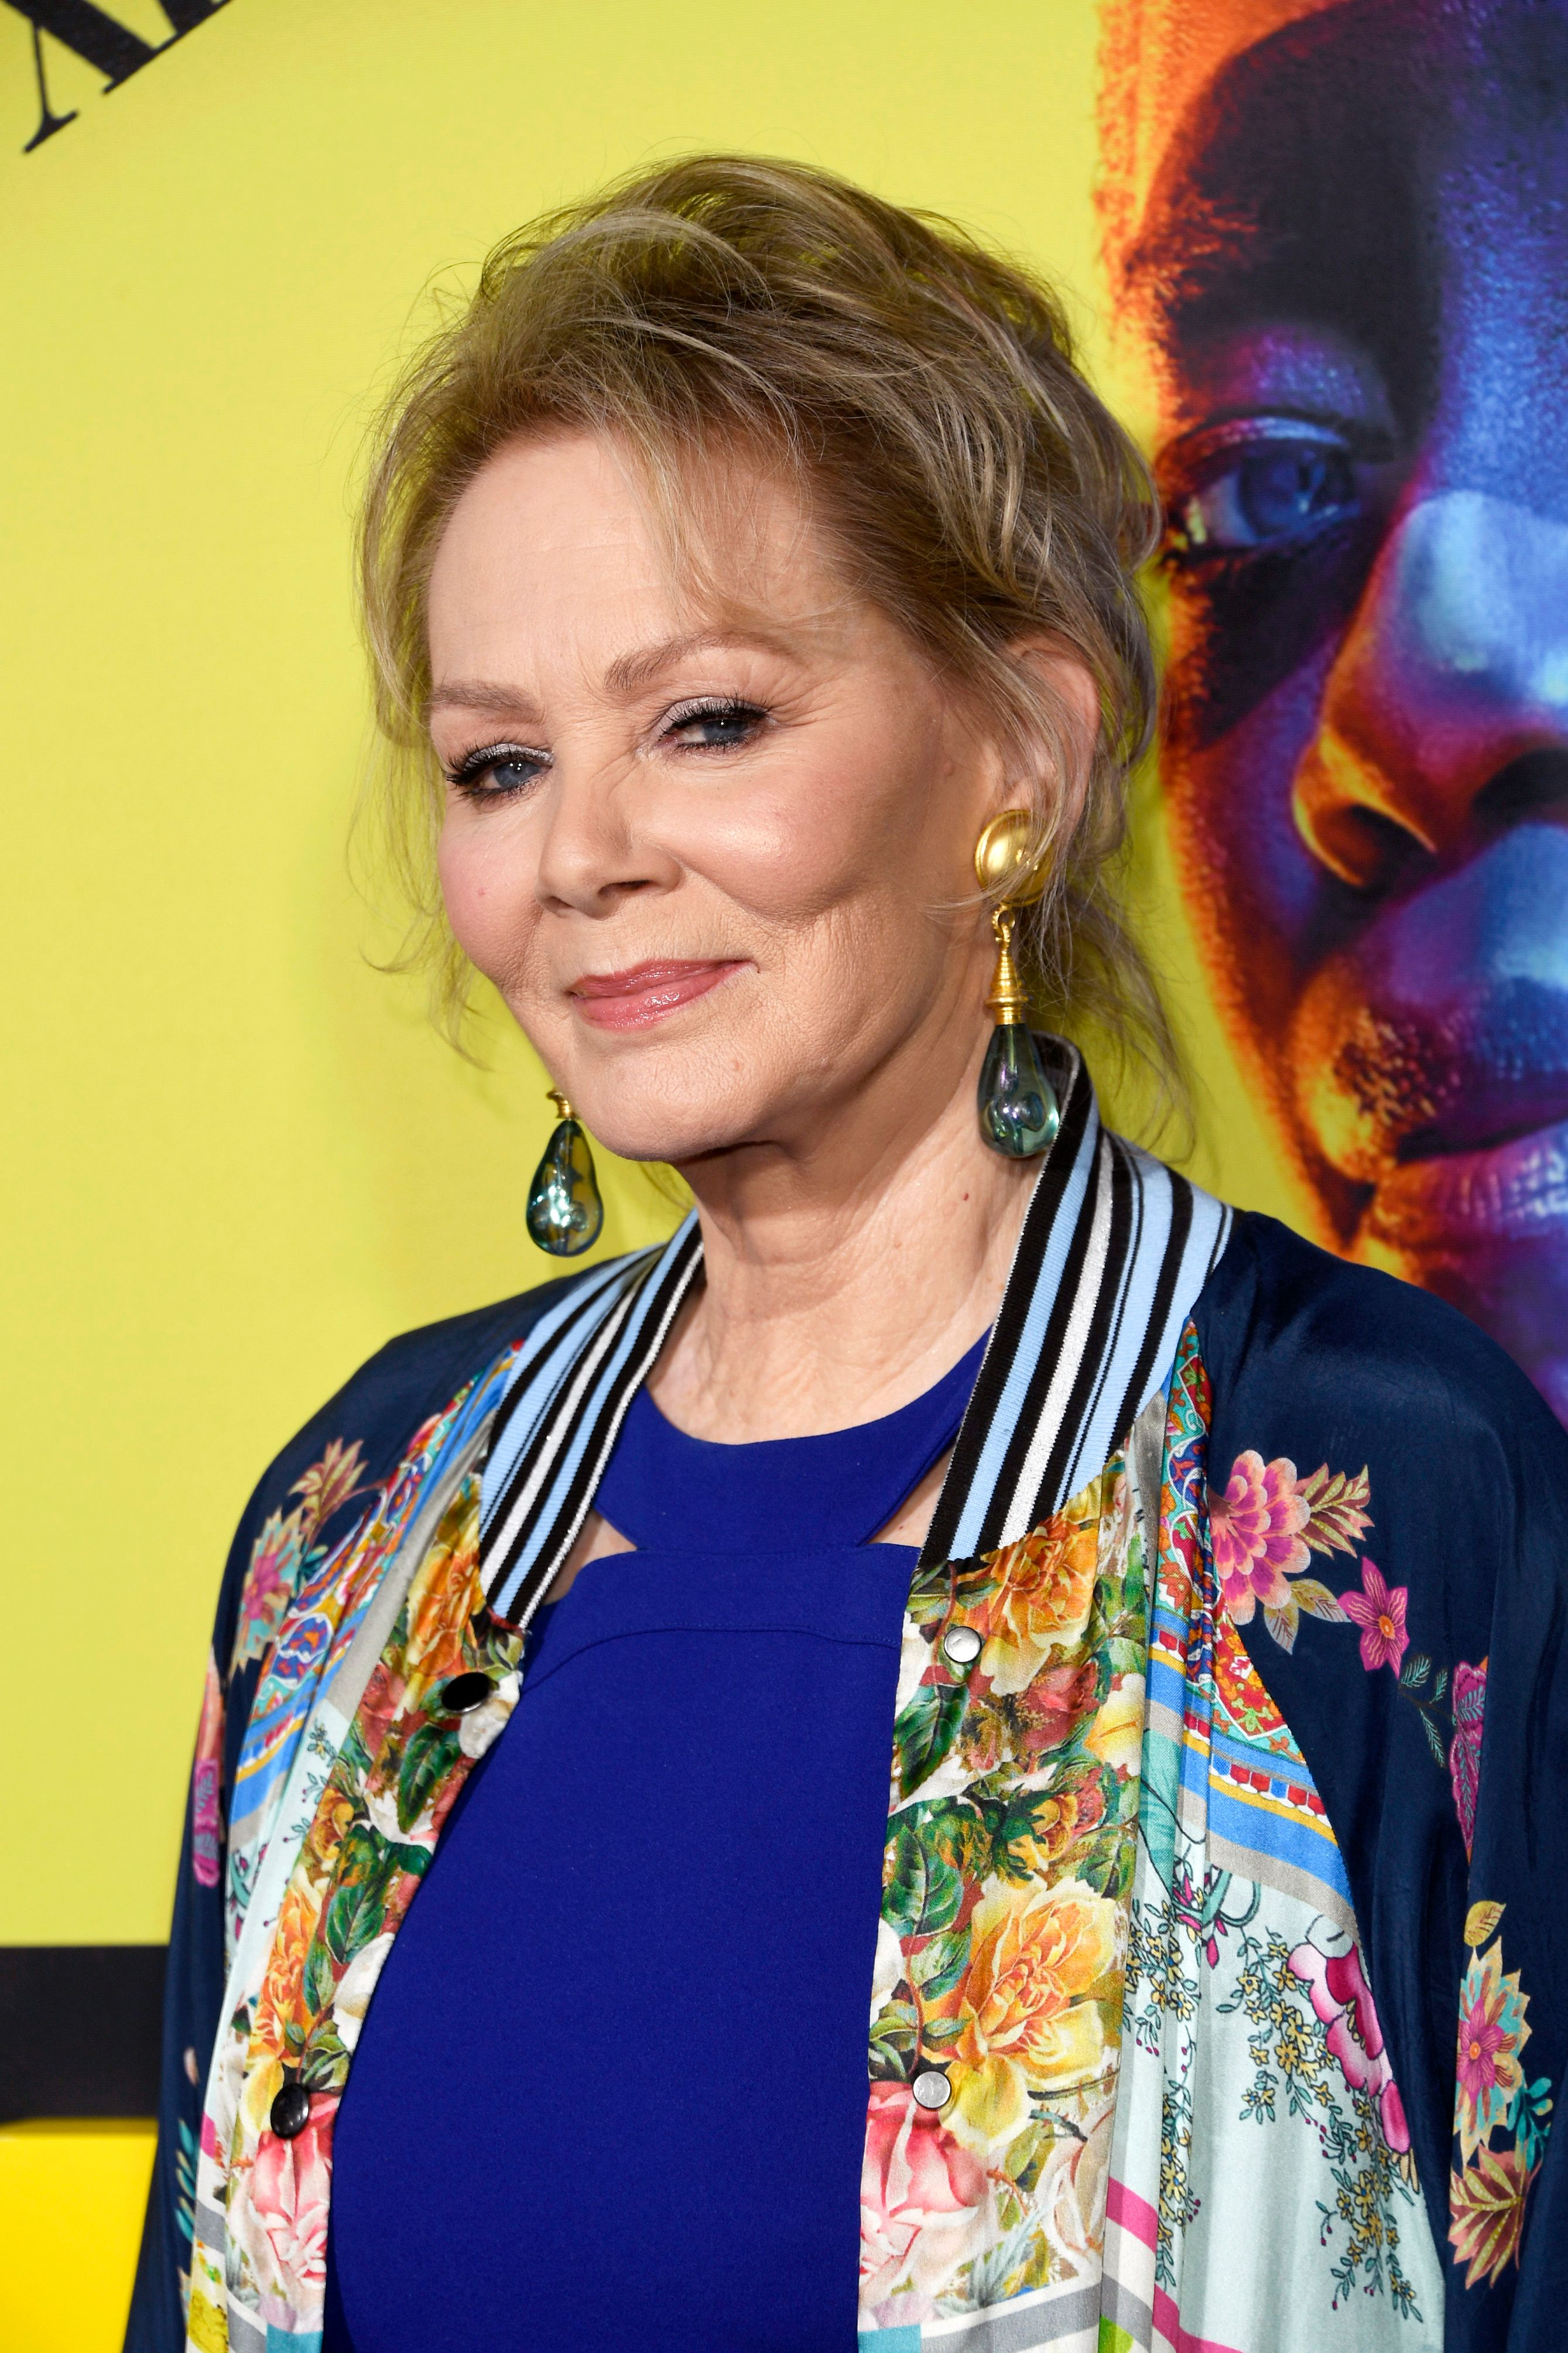 """Jean Smart at the premiere of HBO's """"Watchmen"""" at The Cinerama Dome on October 14, 2019 in Los Angeles, California   Photo: Getty Images"""